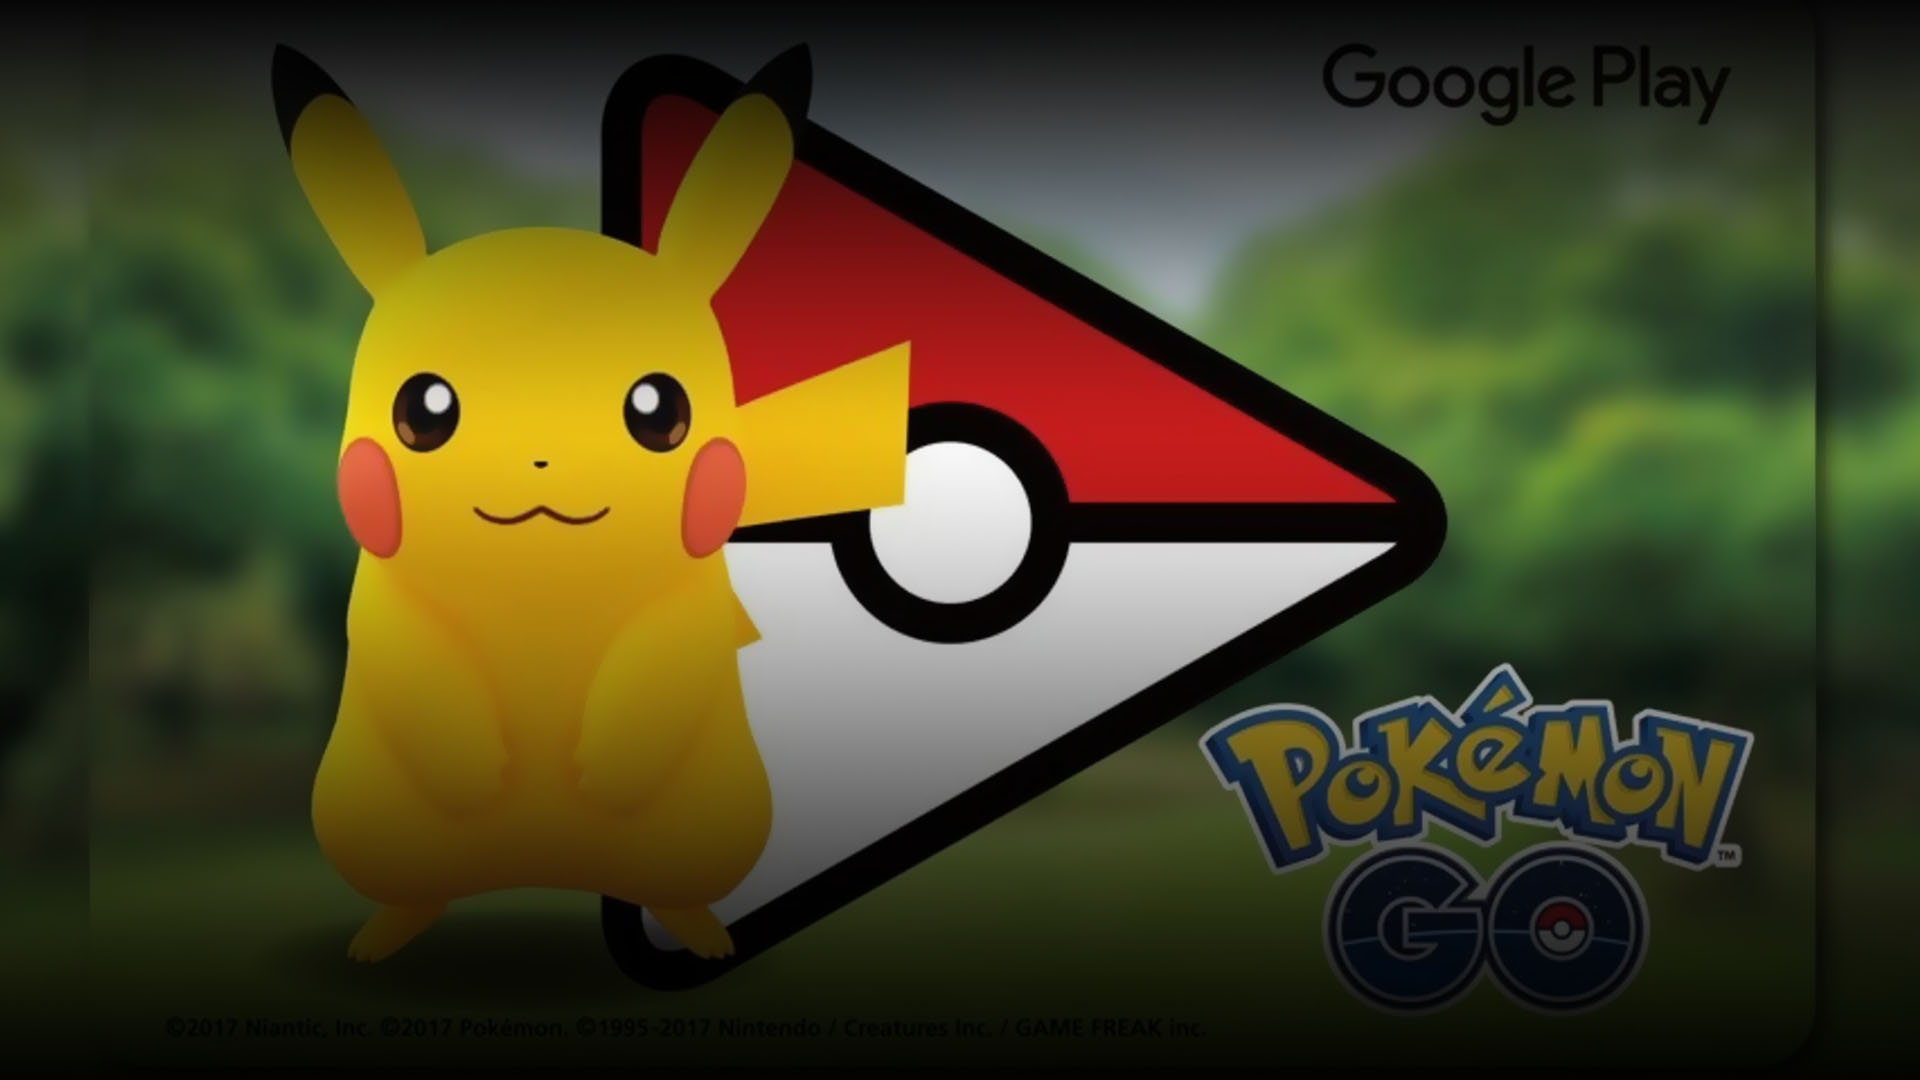 pokémon go google play cards coming to japan | nintendo wire